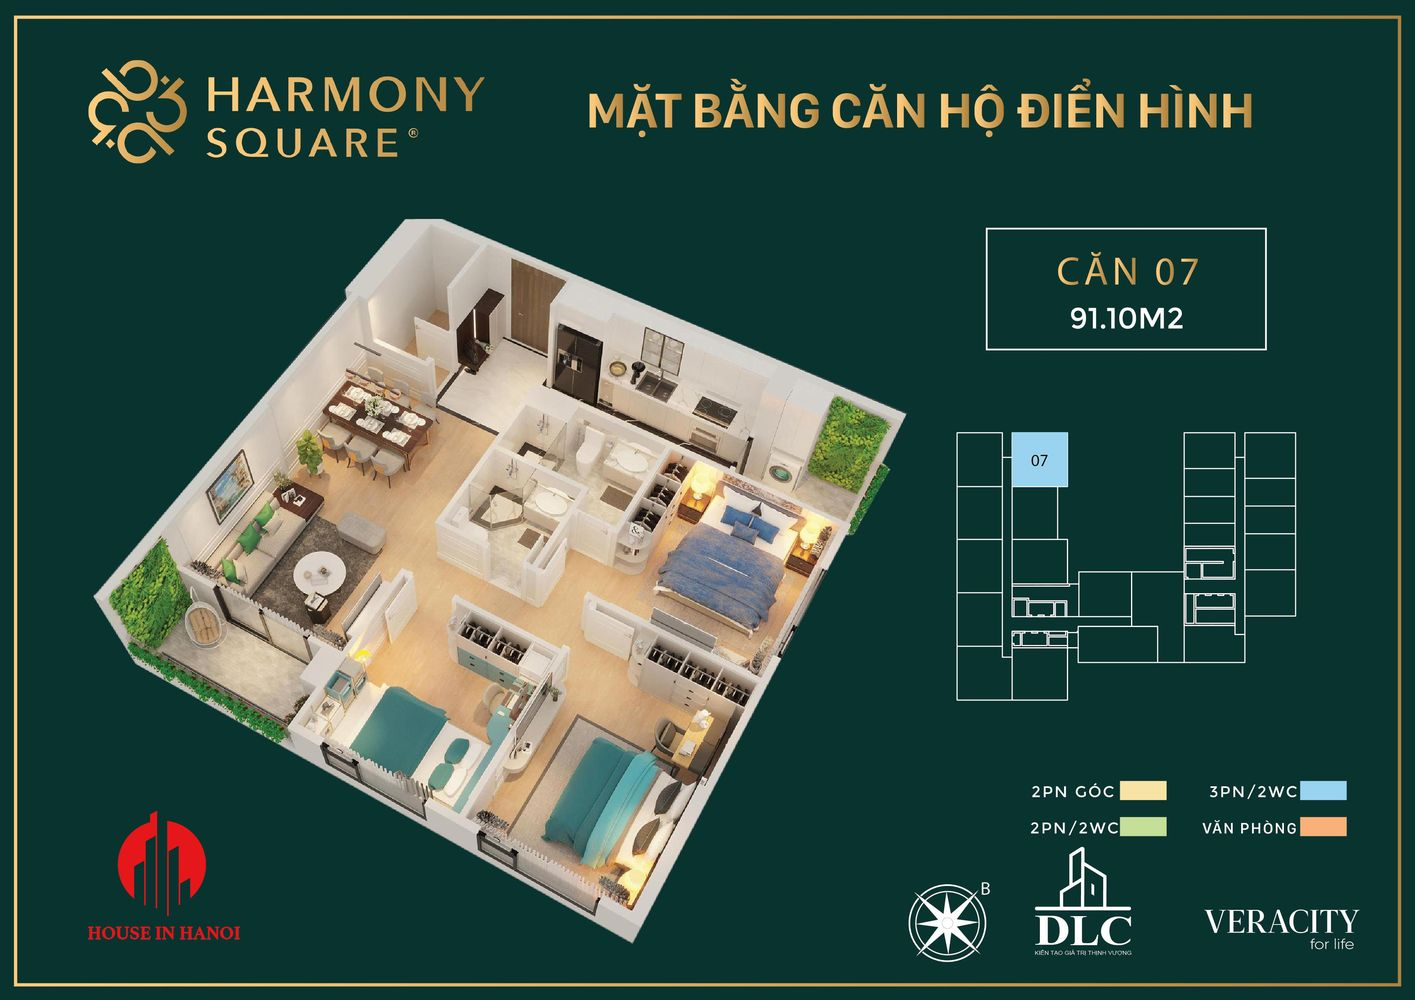 harmony square floor plan 6